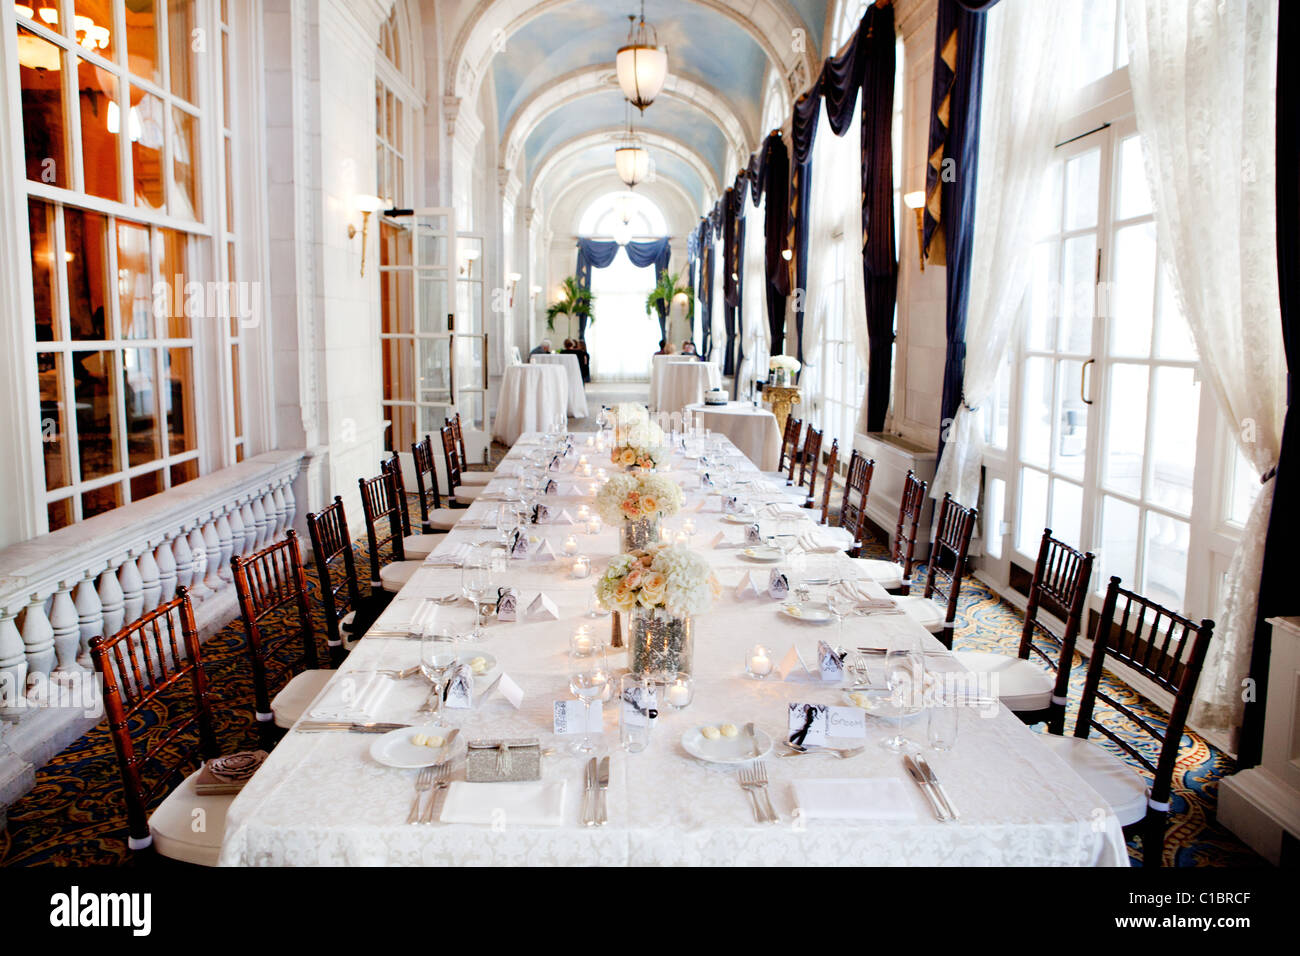 Stock Photo   WEDDING THE HERMITAGE HOTEL NASHVILLE TENNESSEE TN INTERIOR  ARCHITECTURE OLD CLASSY HOTEL DECORATED DECOR TABLE LINEN. Wedding The Hermitage Hotel Nashville Tennessee Tn Interior Stock